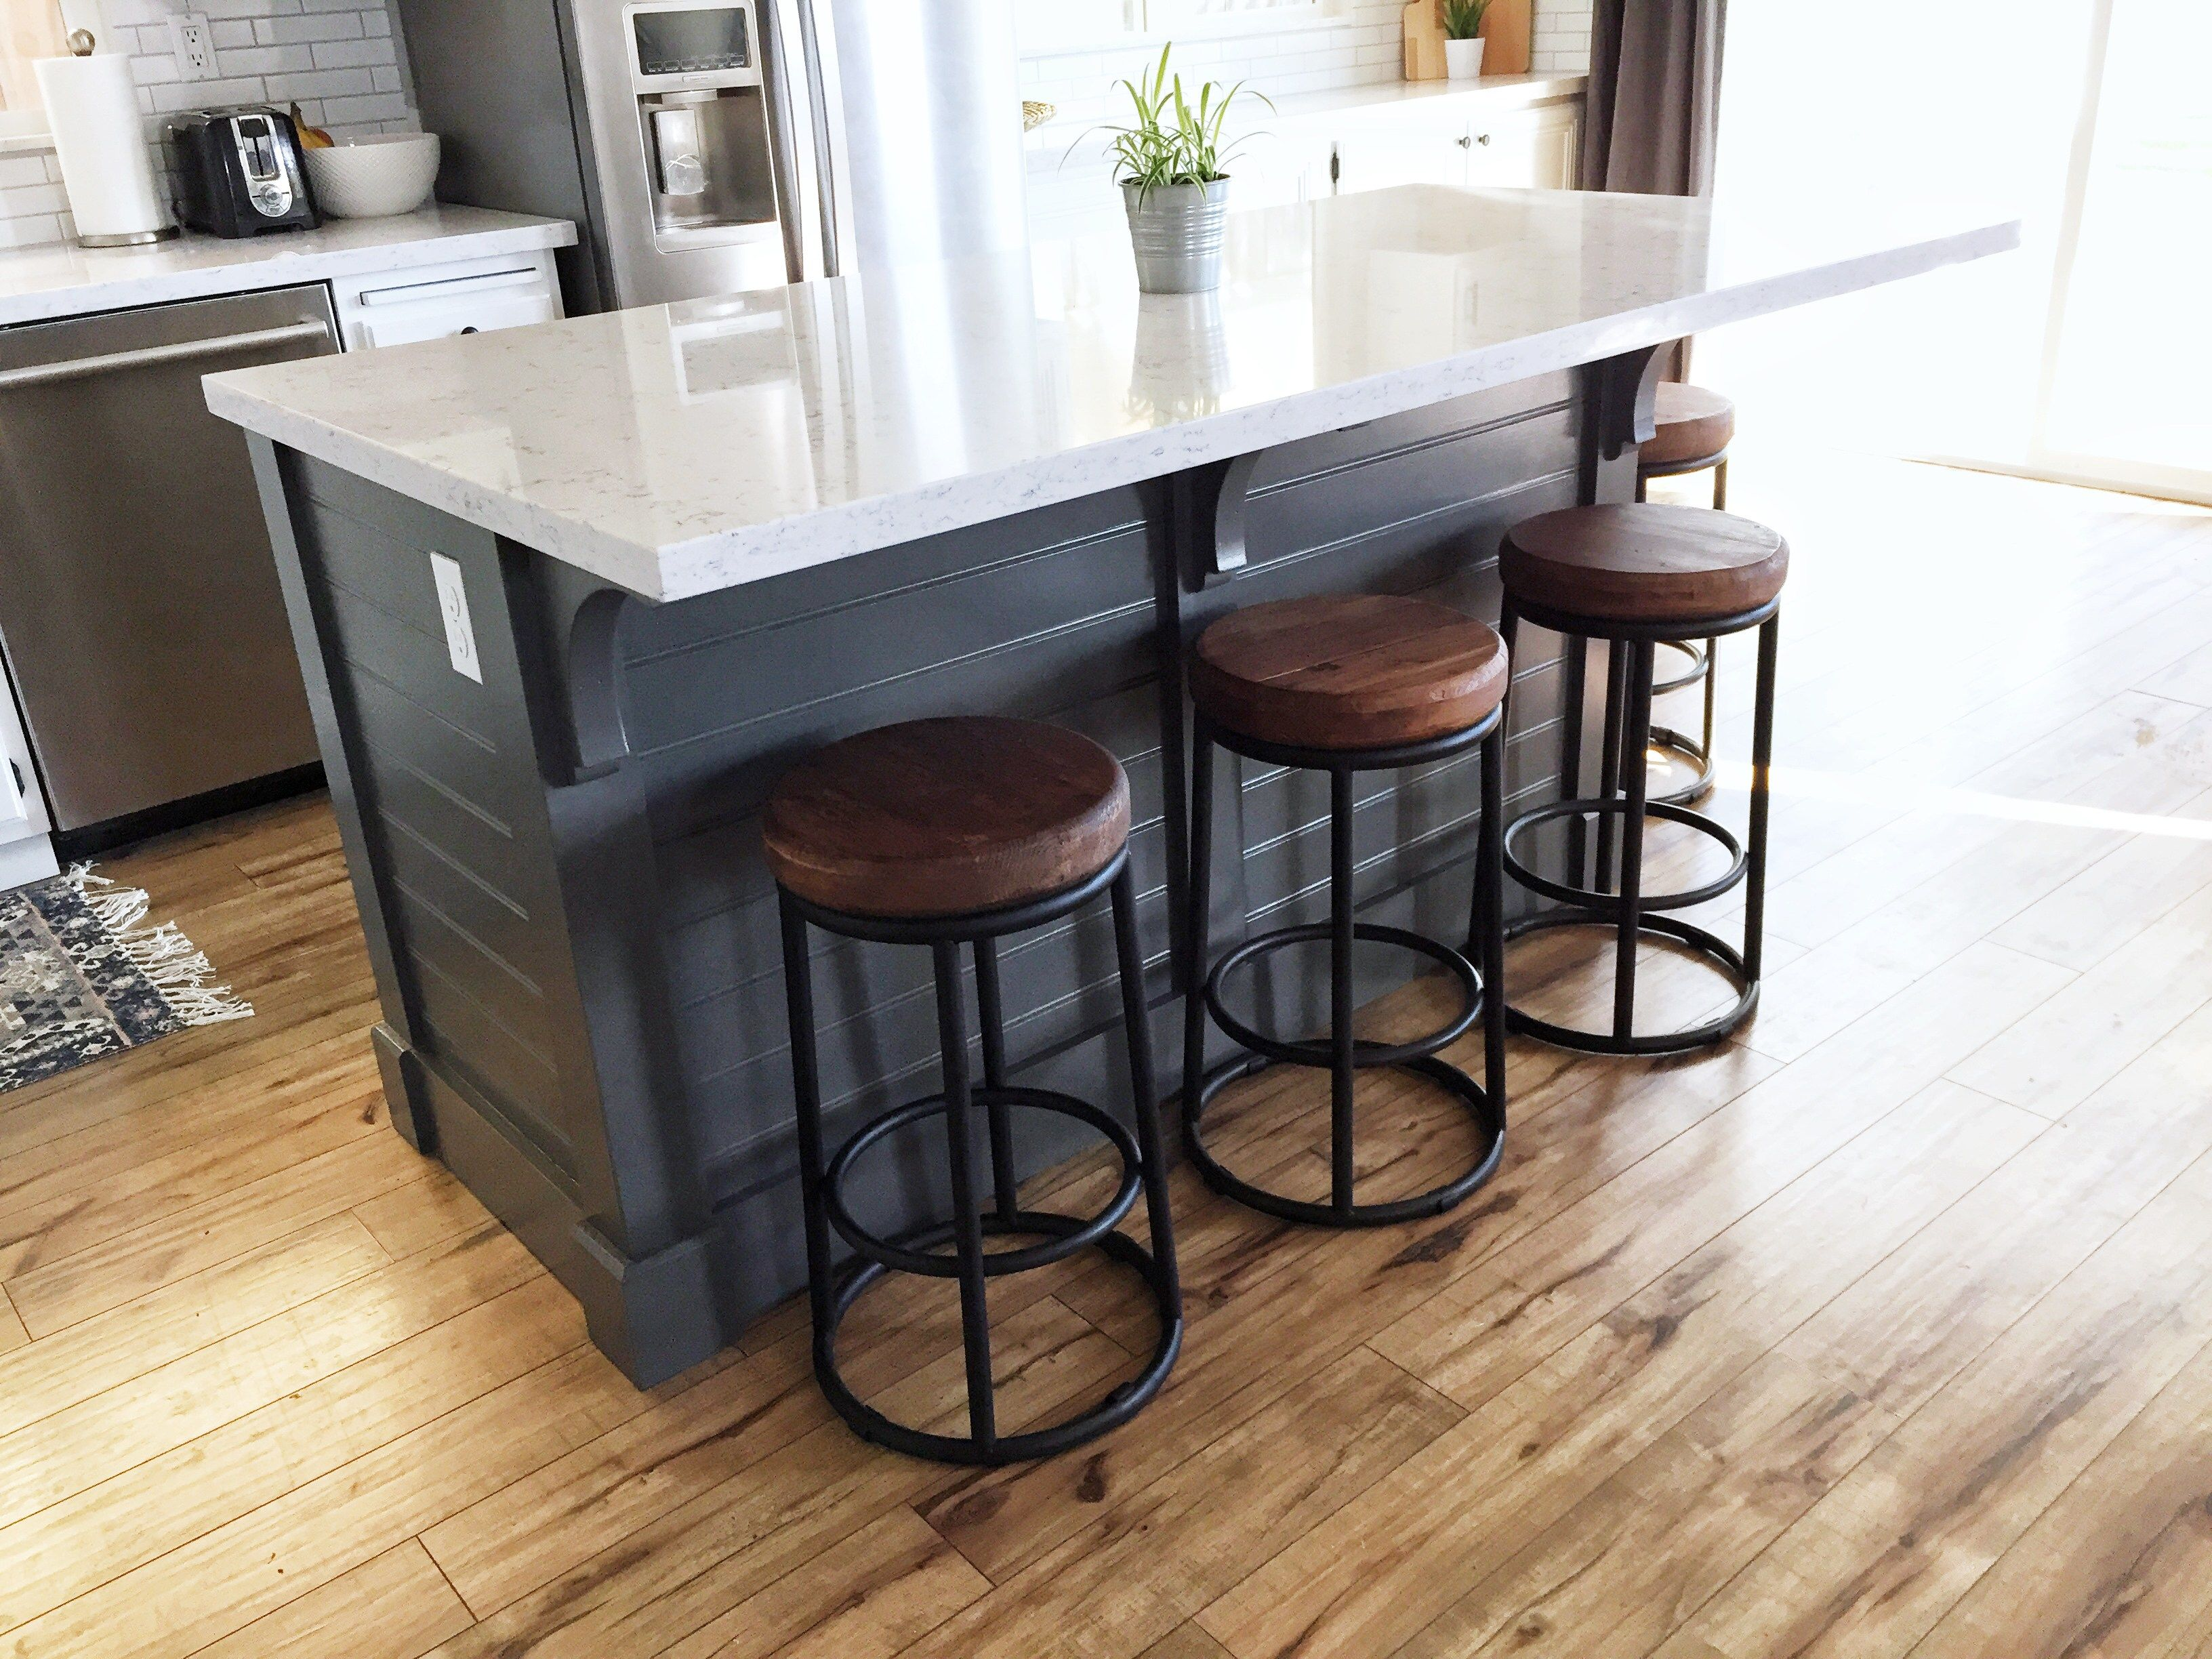 Kitchen Island- Make it yourself! Save Big | Kitchens, Diy kitchen ...